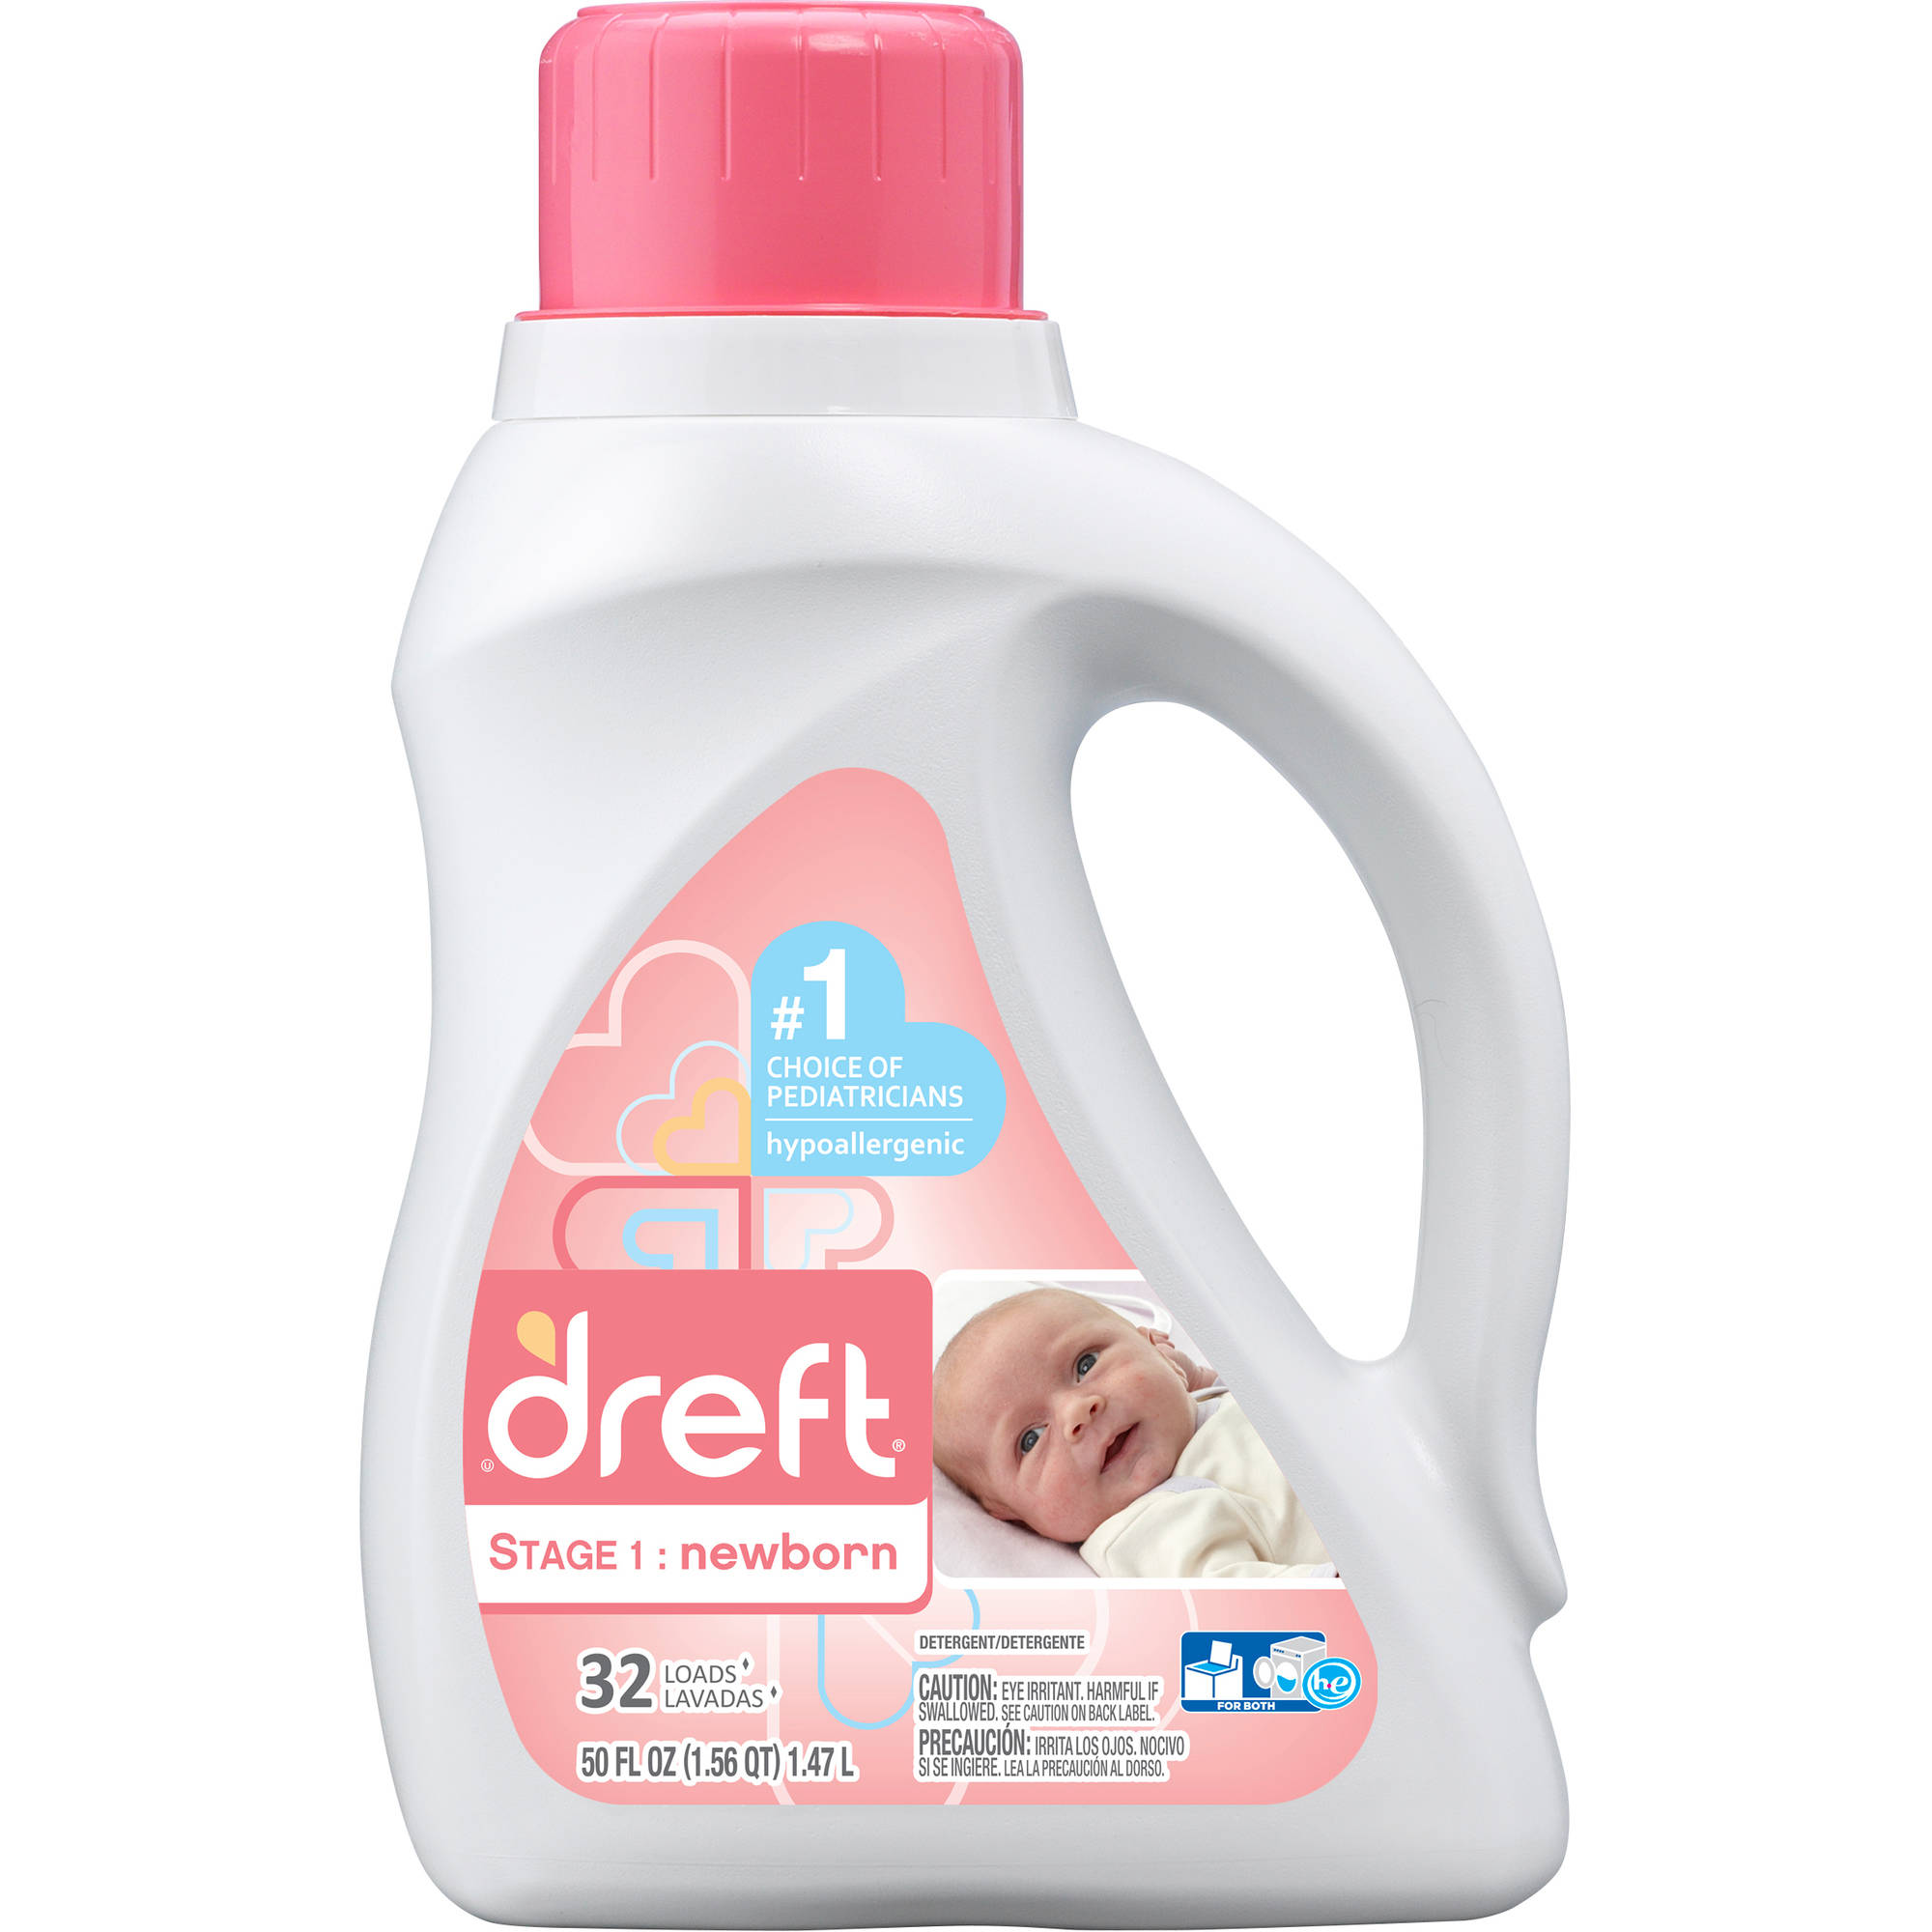 Dreft Stage 1: Newborn Liquid Laundry Detergent, 35 Loads 50 fl oz